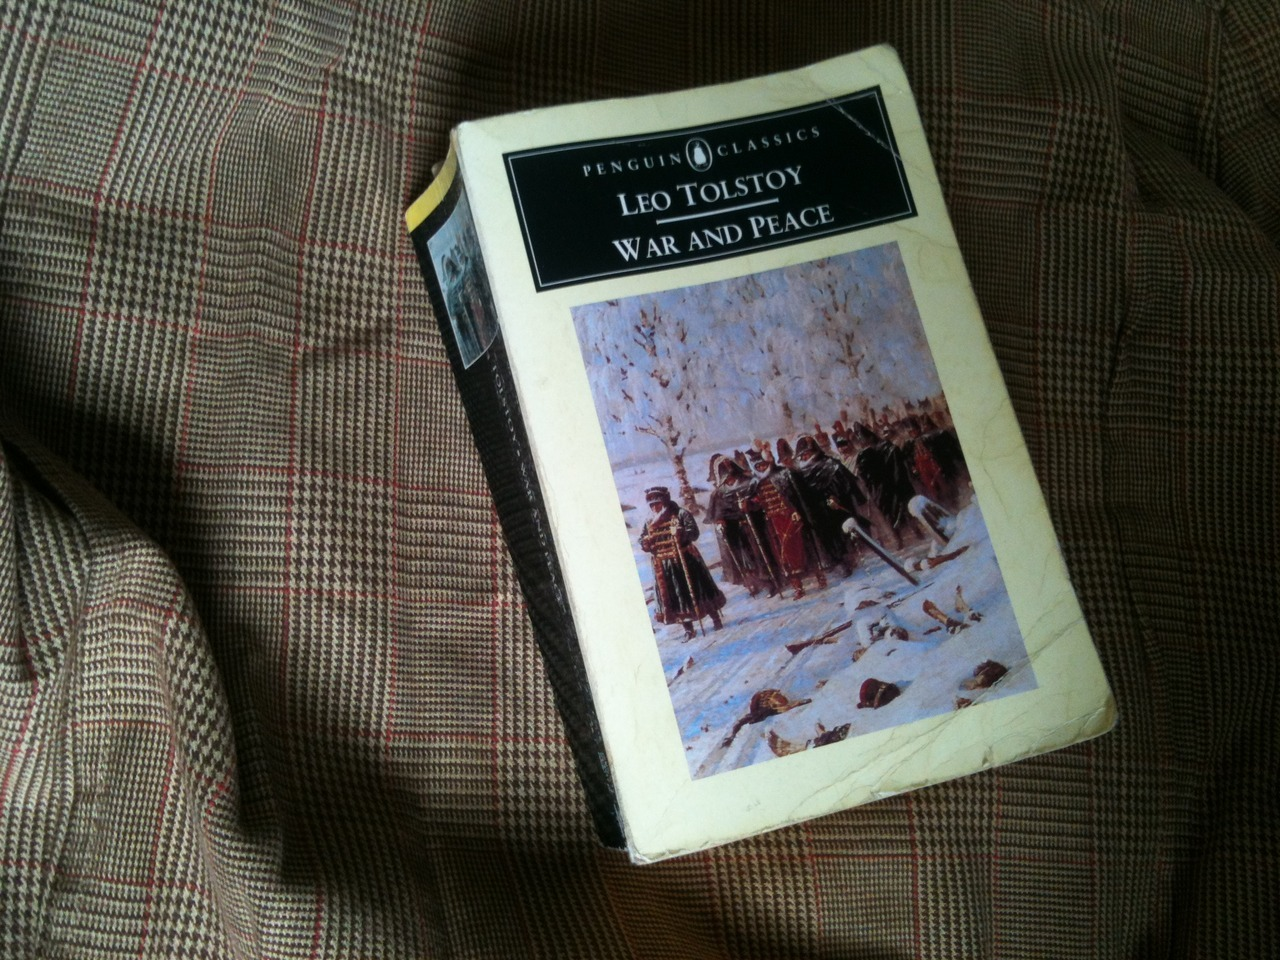 Currently reading - 'War and Peace' by Tolstoy. It seemed like a good choice for autumn.